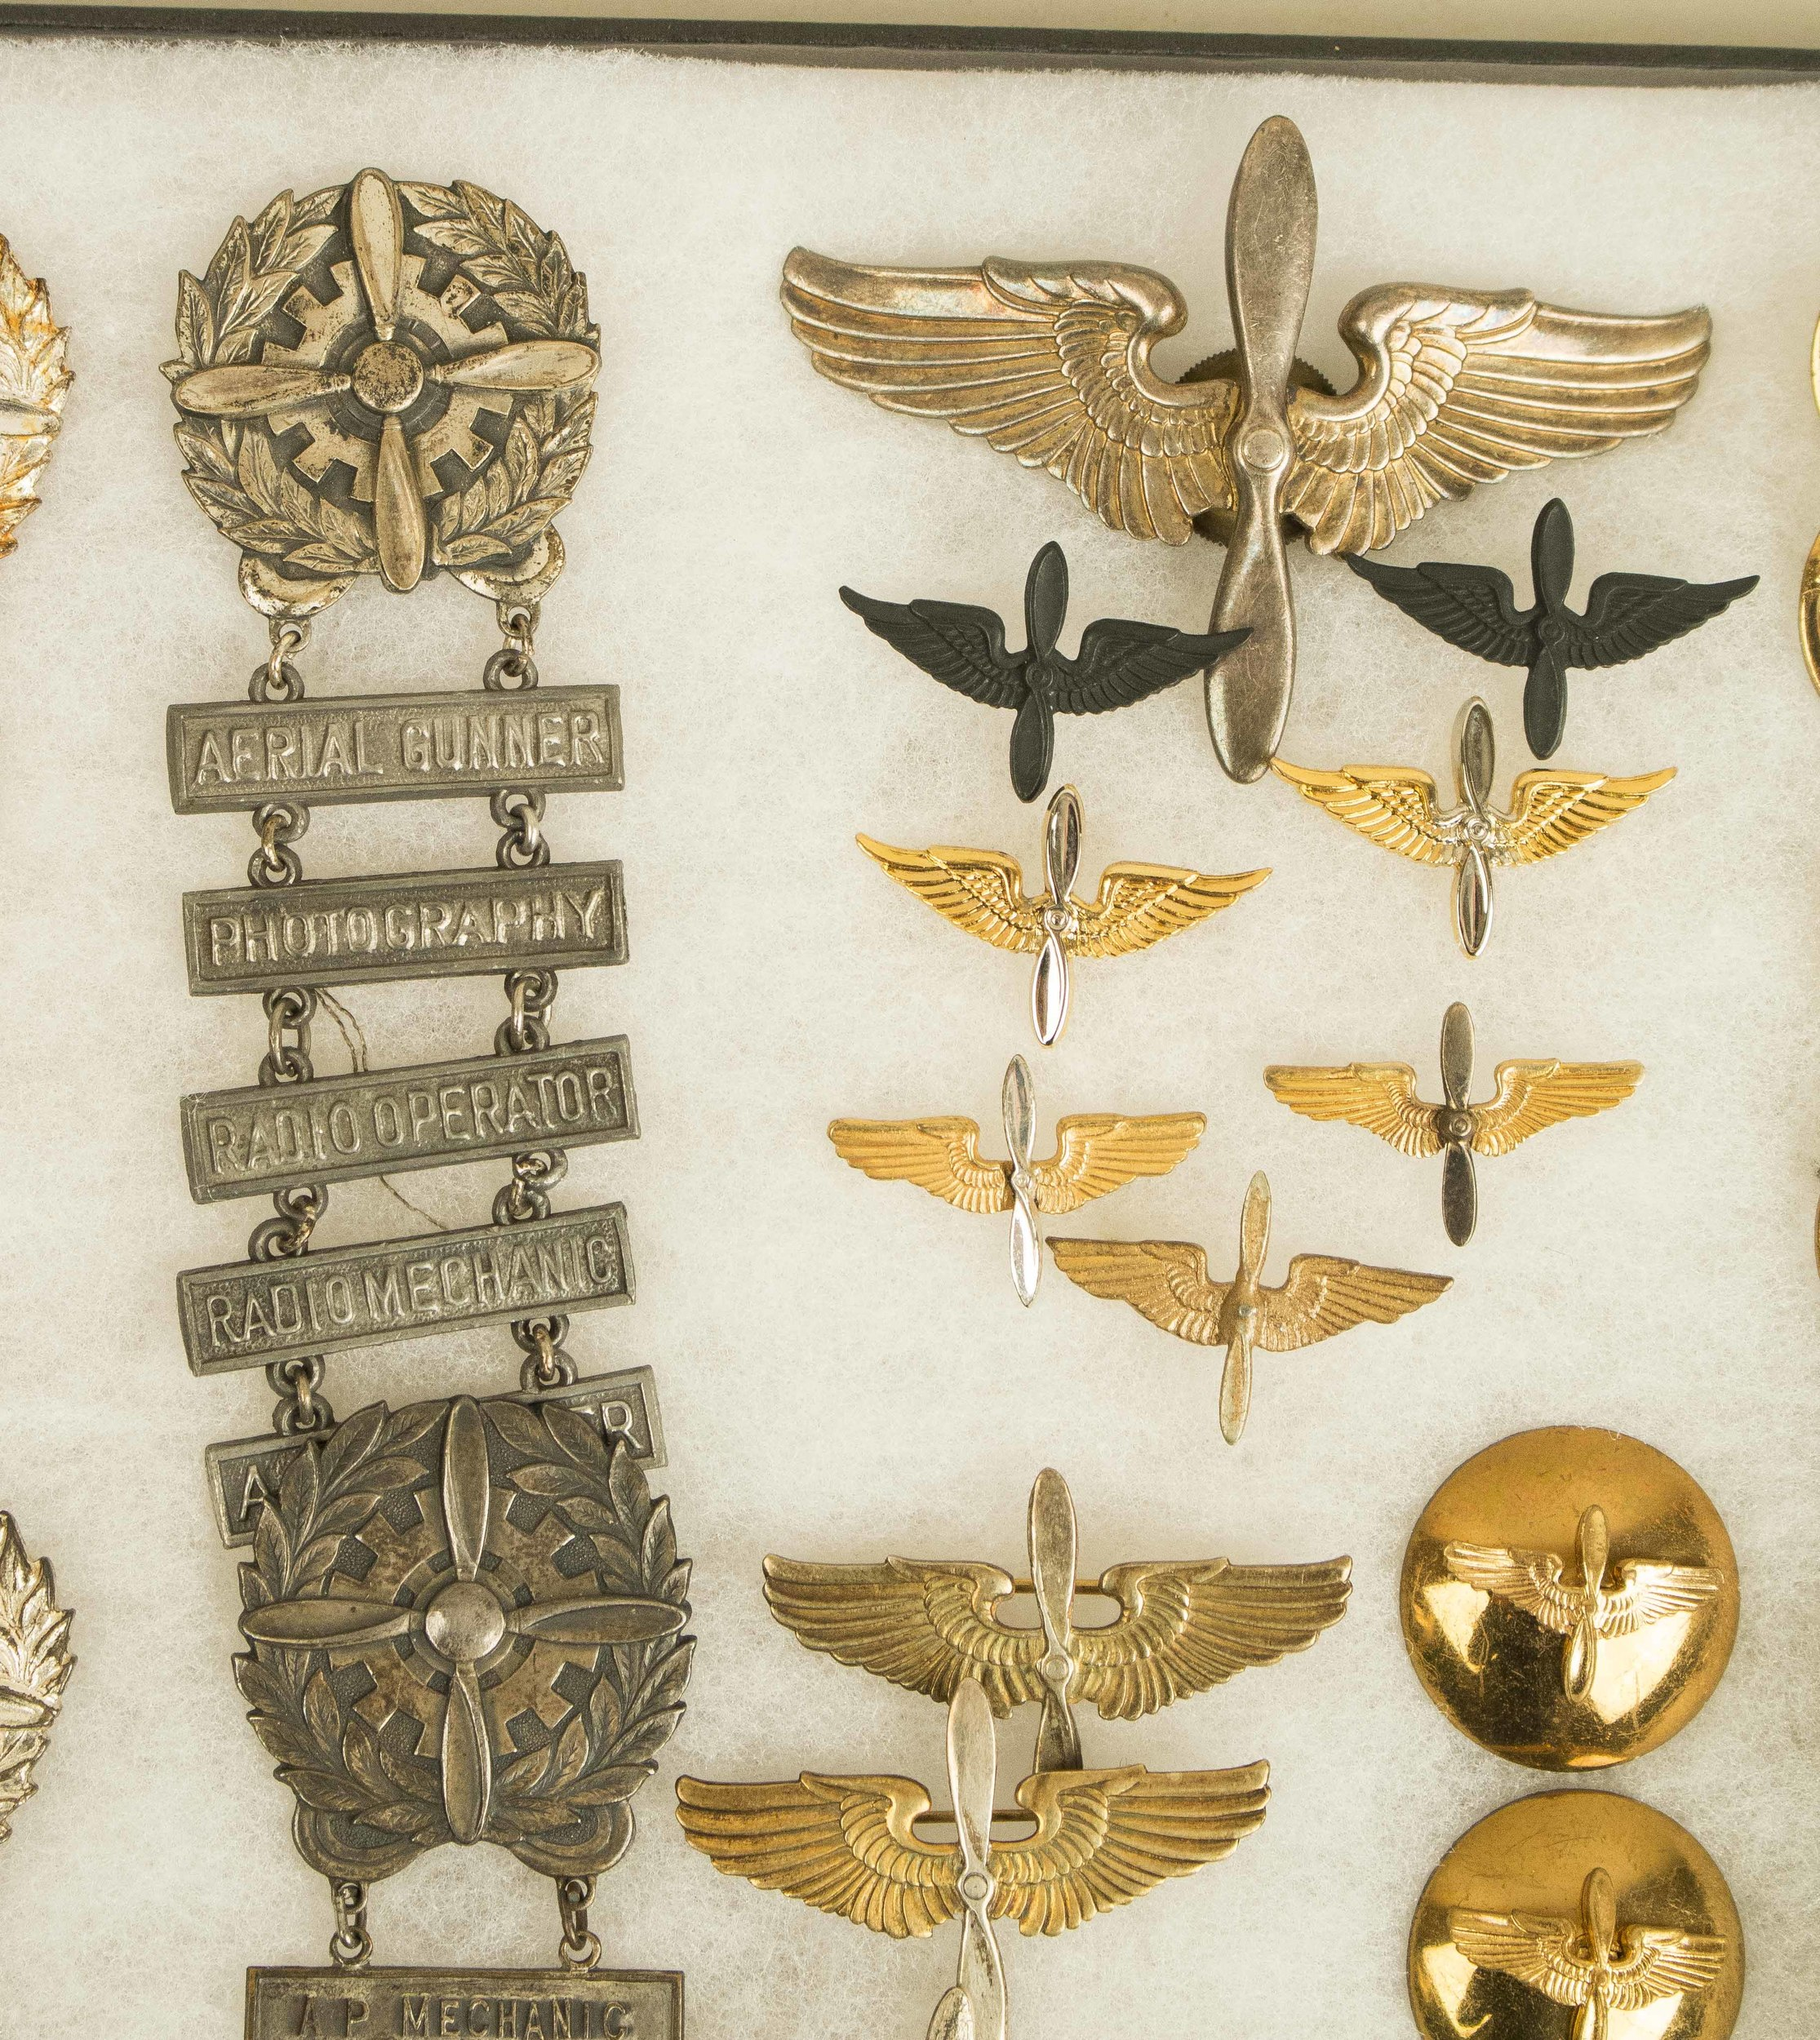 US Army Air Corps Insignia, some British, some sterling, many rare